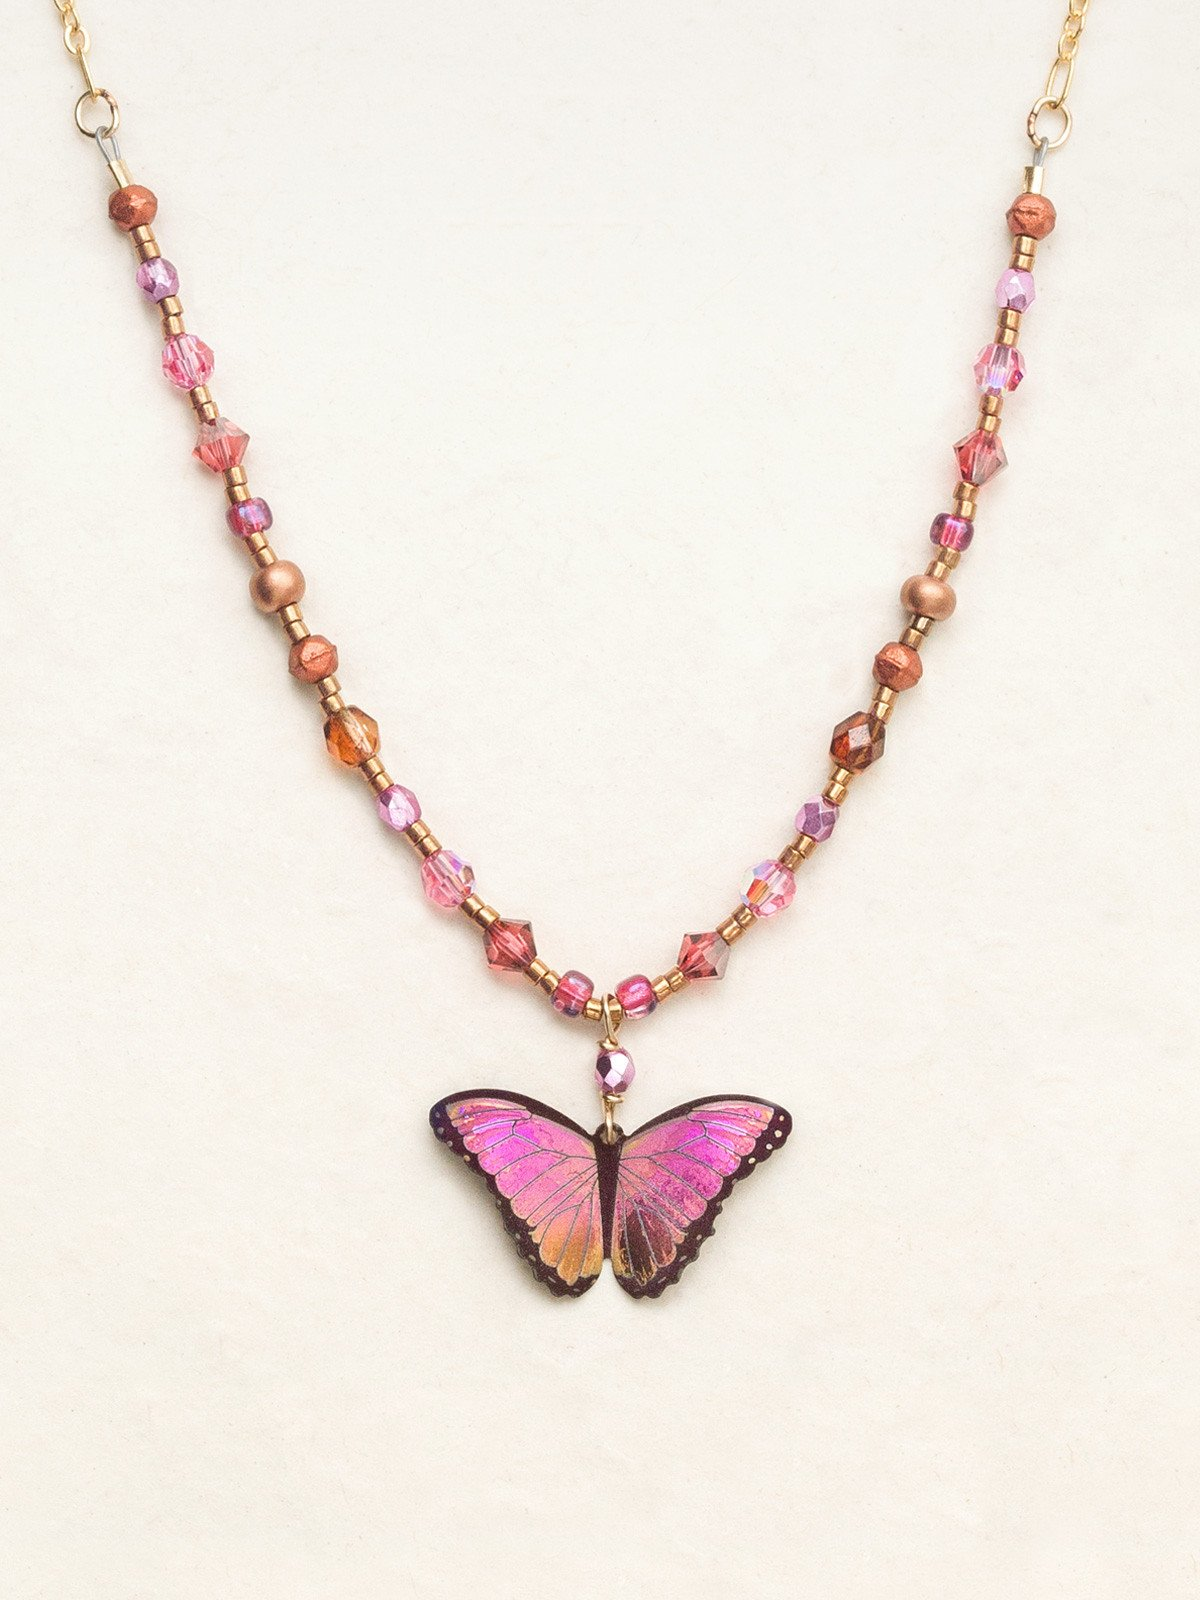 Bella Butterfly Beaded Necklace - Heart of the Home PA